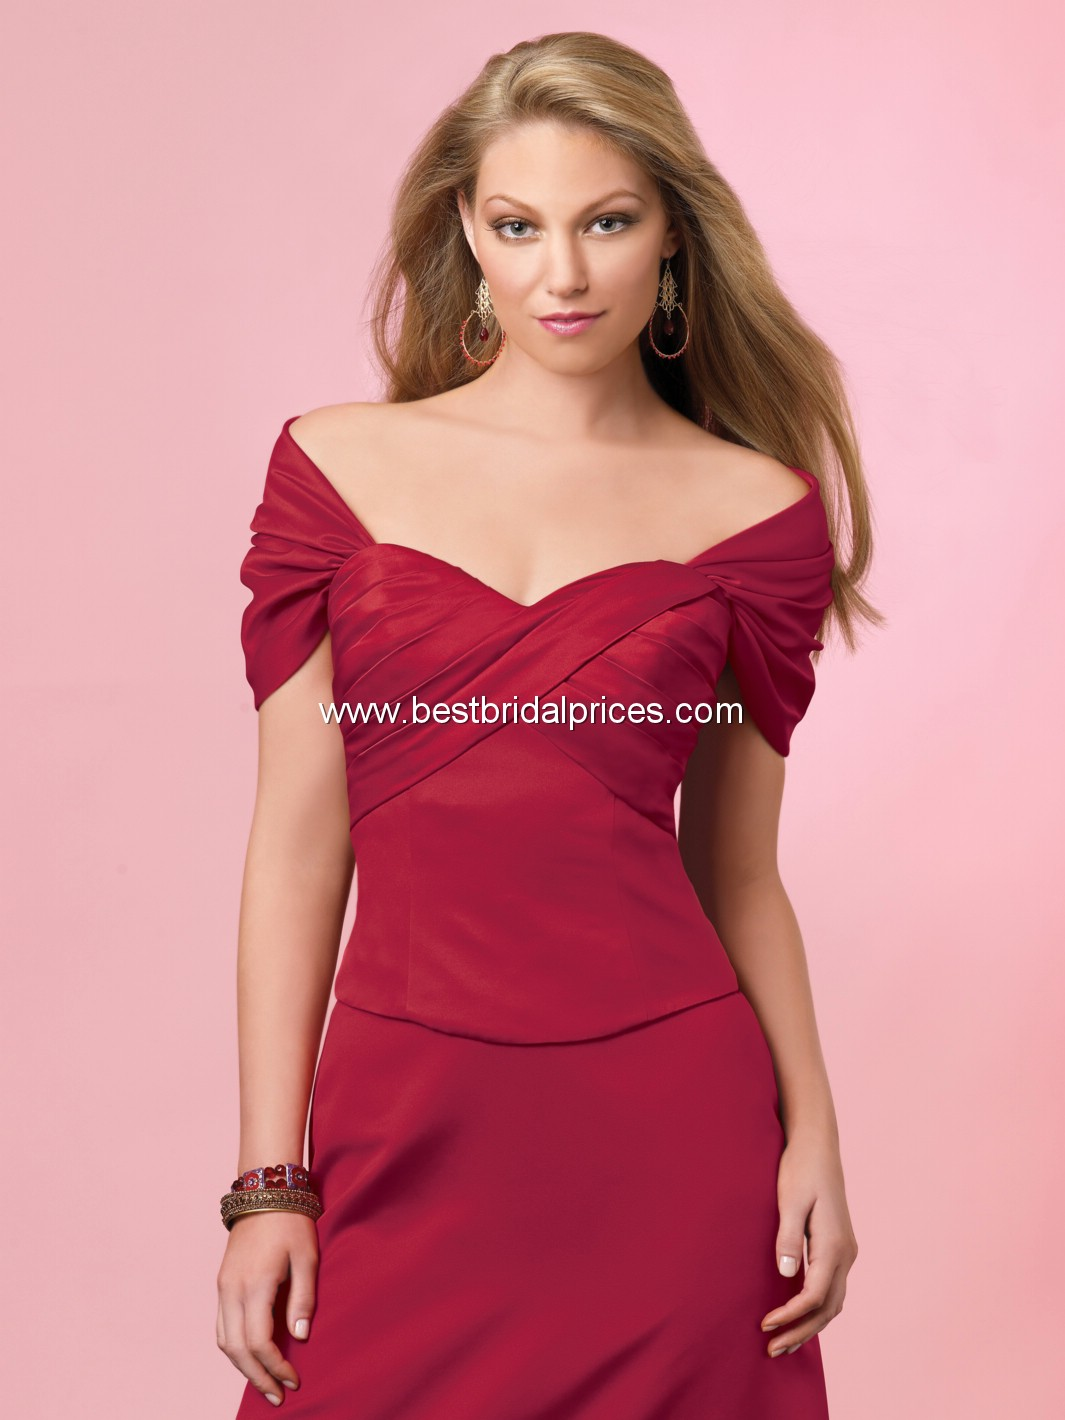 Add Straps To Strapless Dress Cocktail Dresses 2016